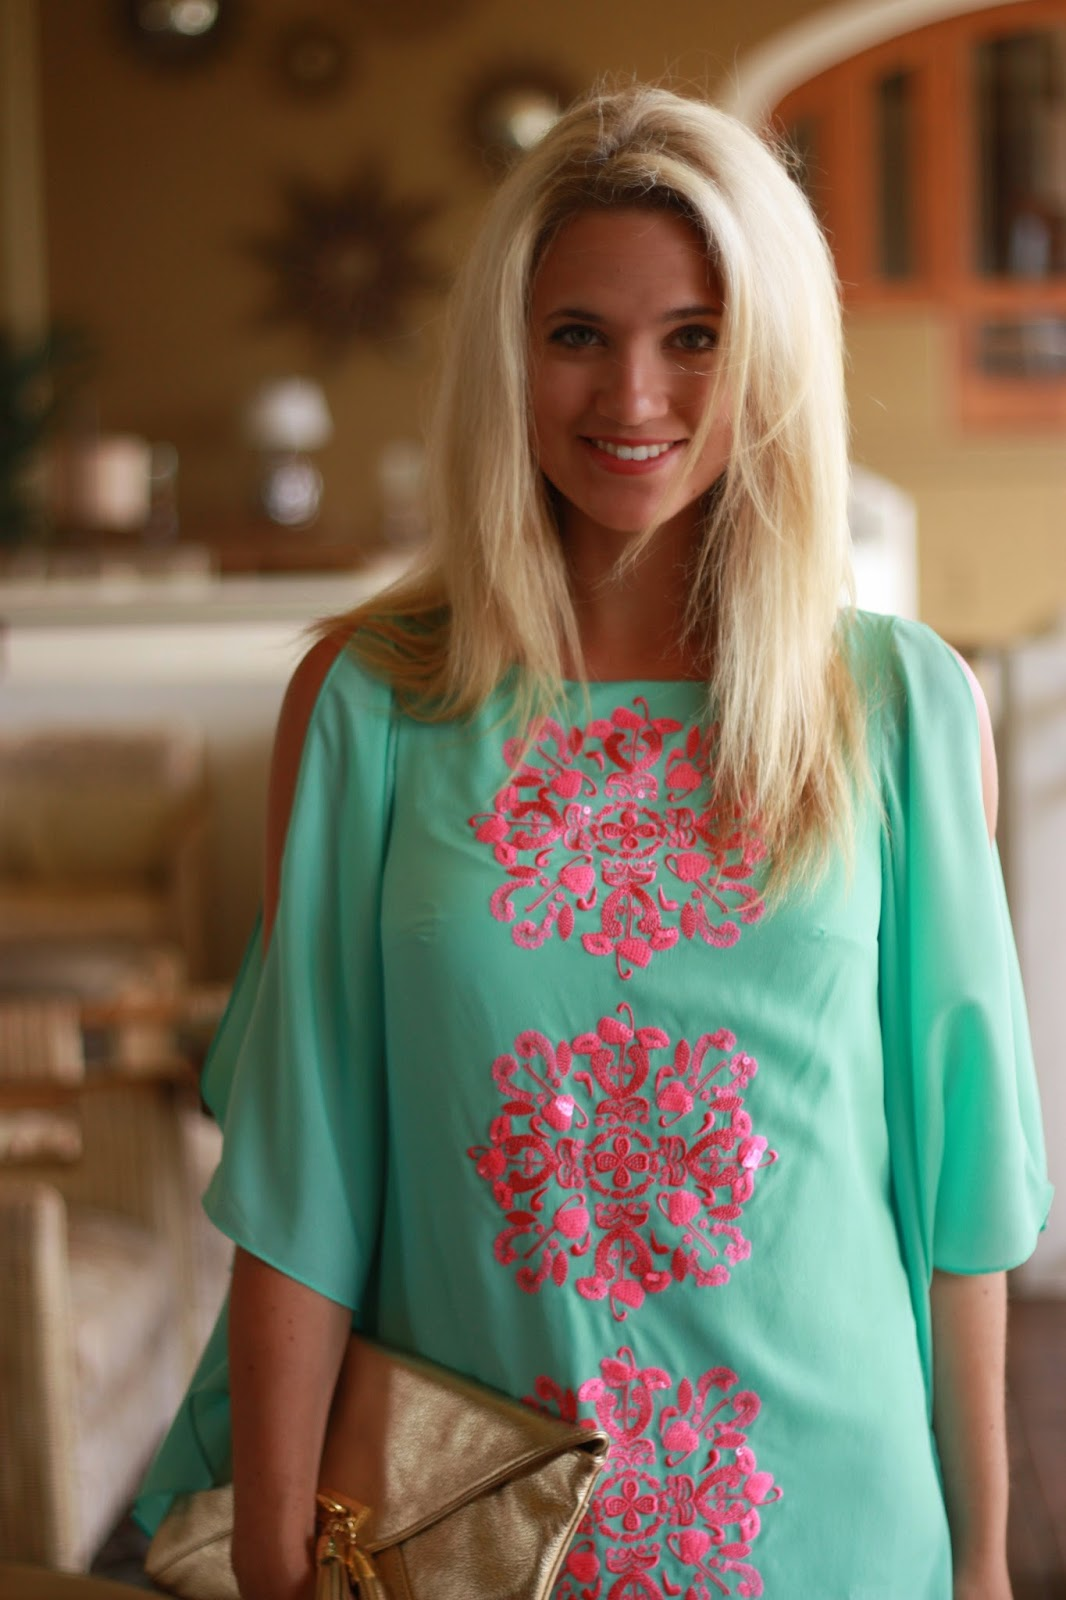 (caftan: Lilly Pulitzer, Shoes: Franco Sarto, Clutch: Lilly Pulitzer,  Earrings: Anna & Ava, Sunglasses: Target)